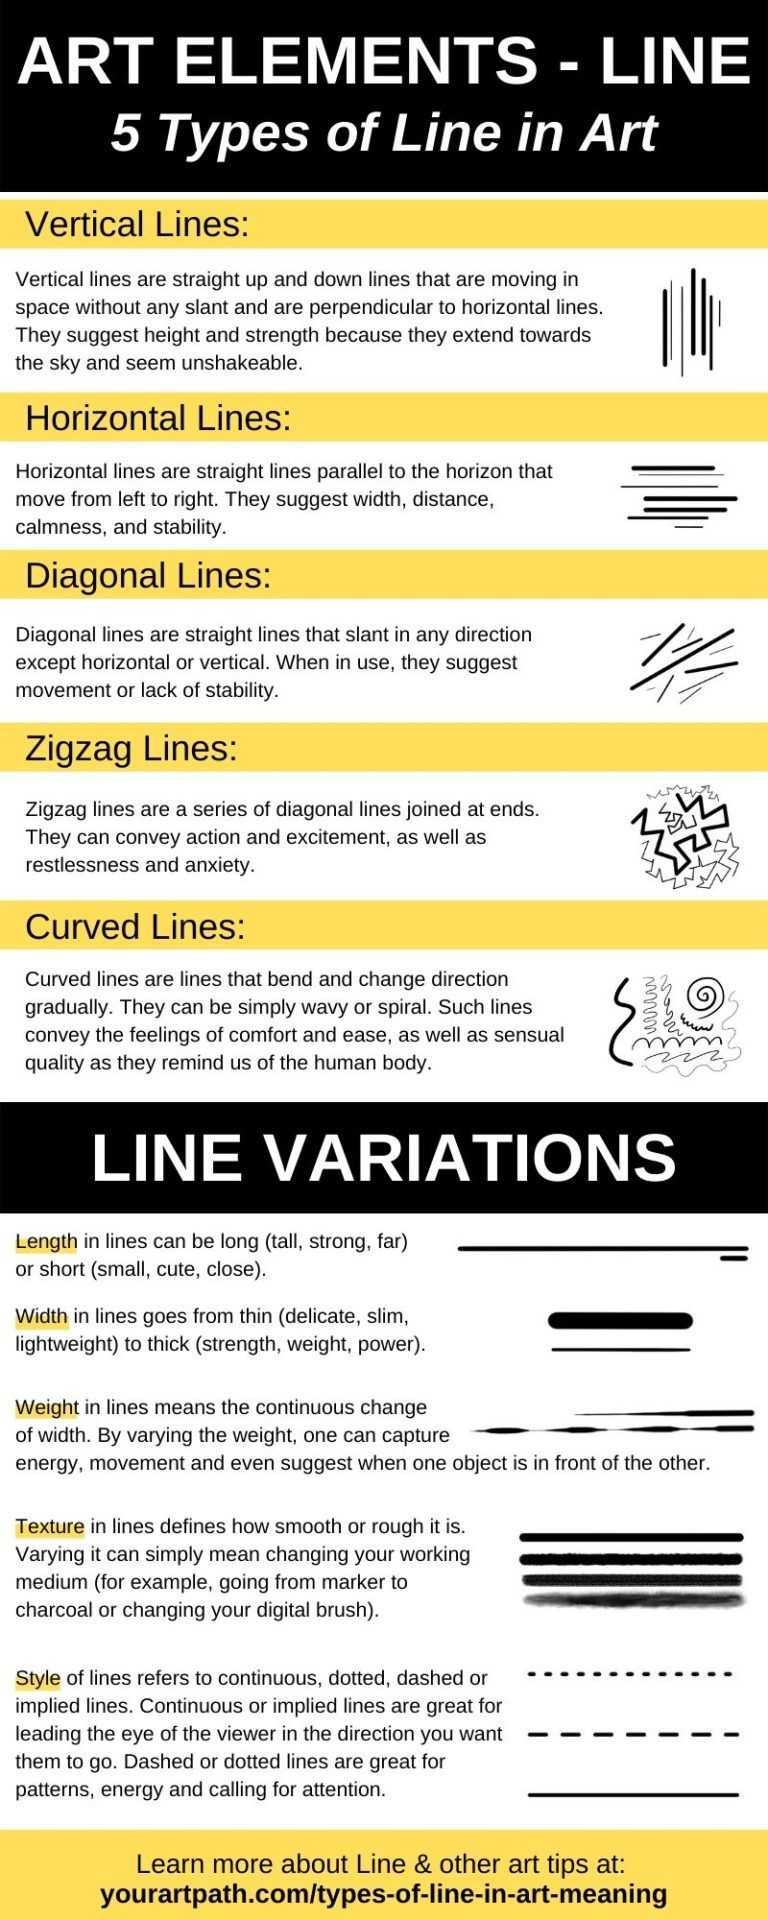 5 Types Of Line In Art Their Meaning And When To Use Them In 2020 Elements Of Art Line Elements Of Art Formal Elements Of Art